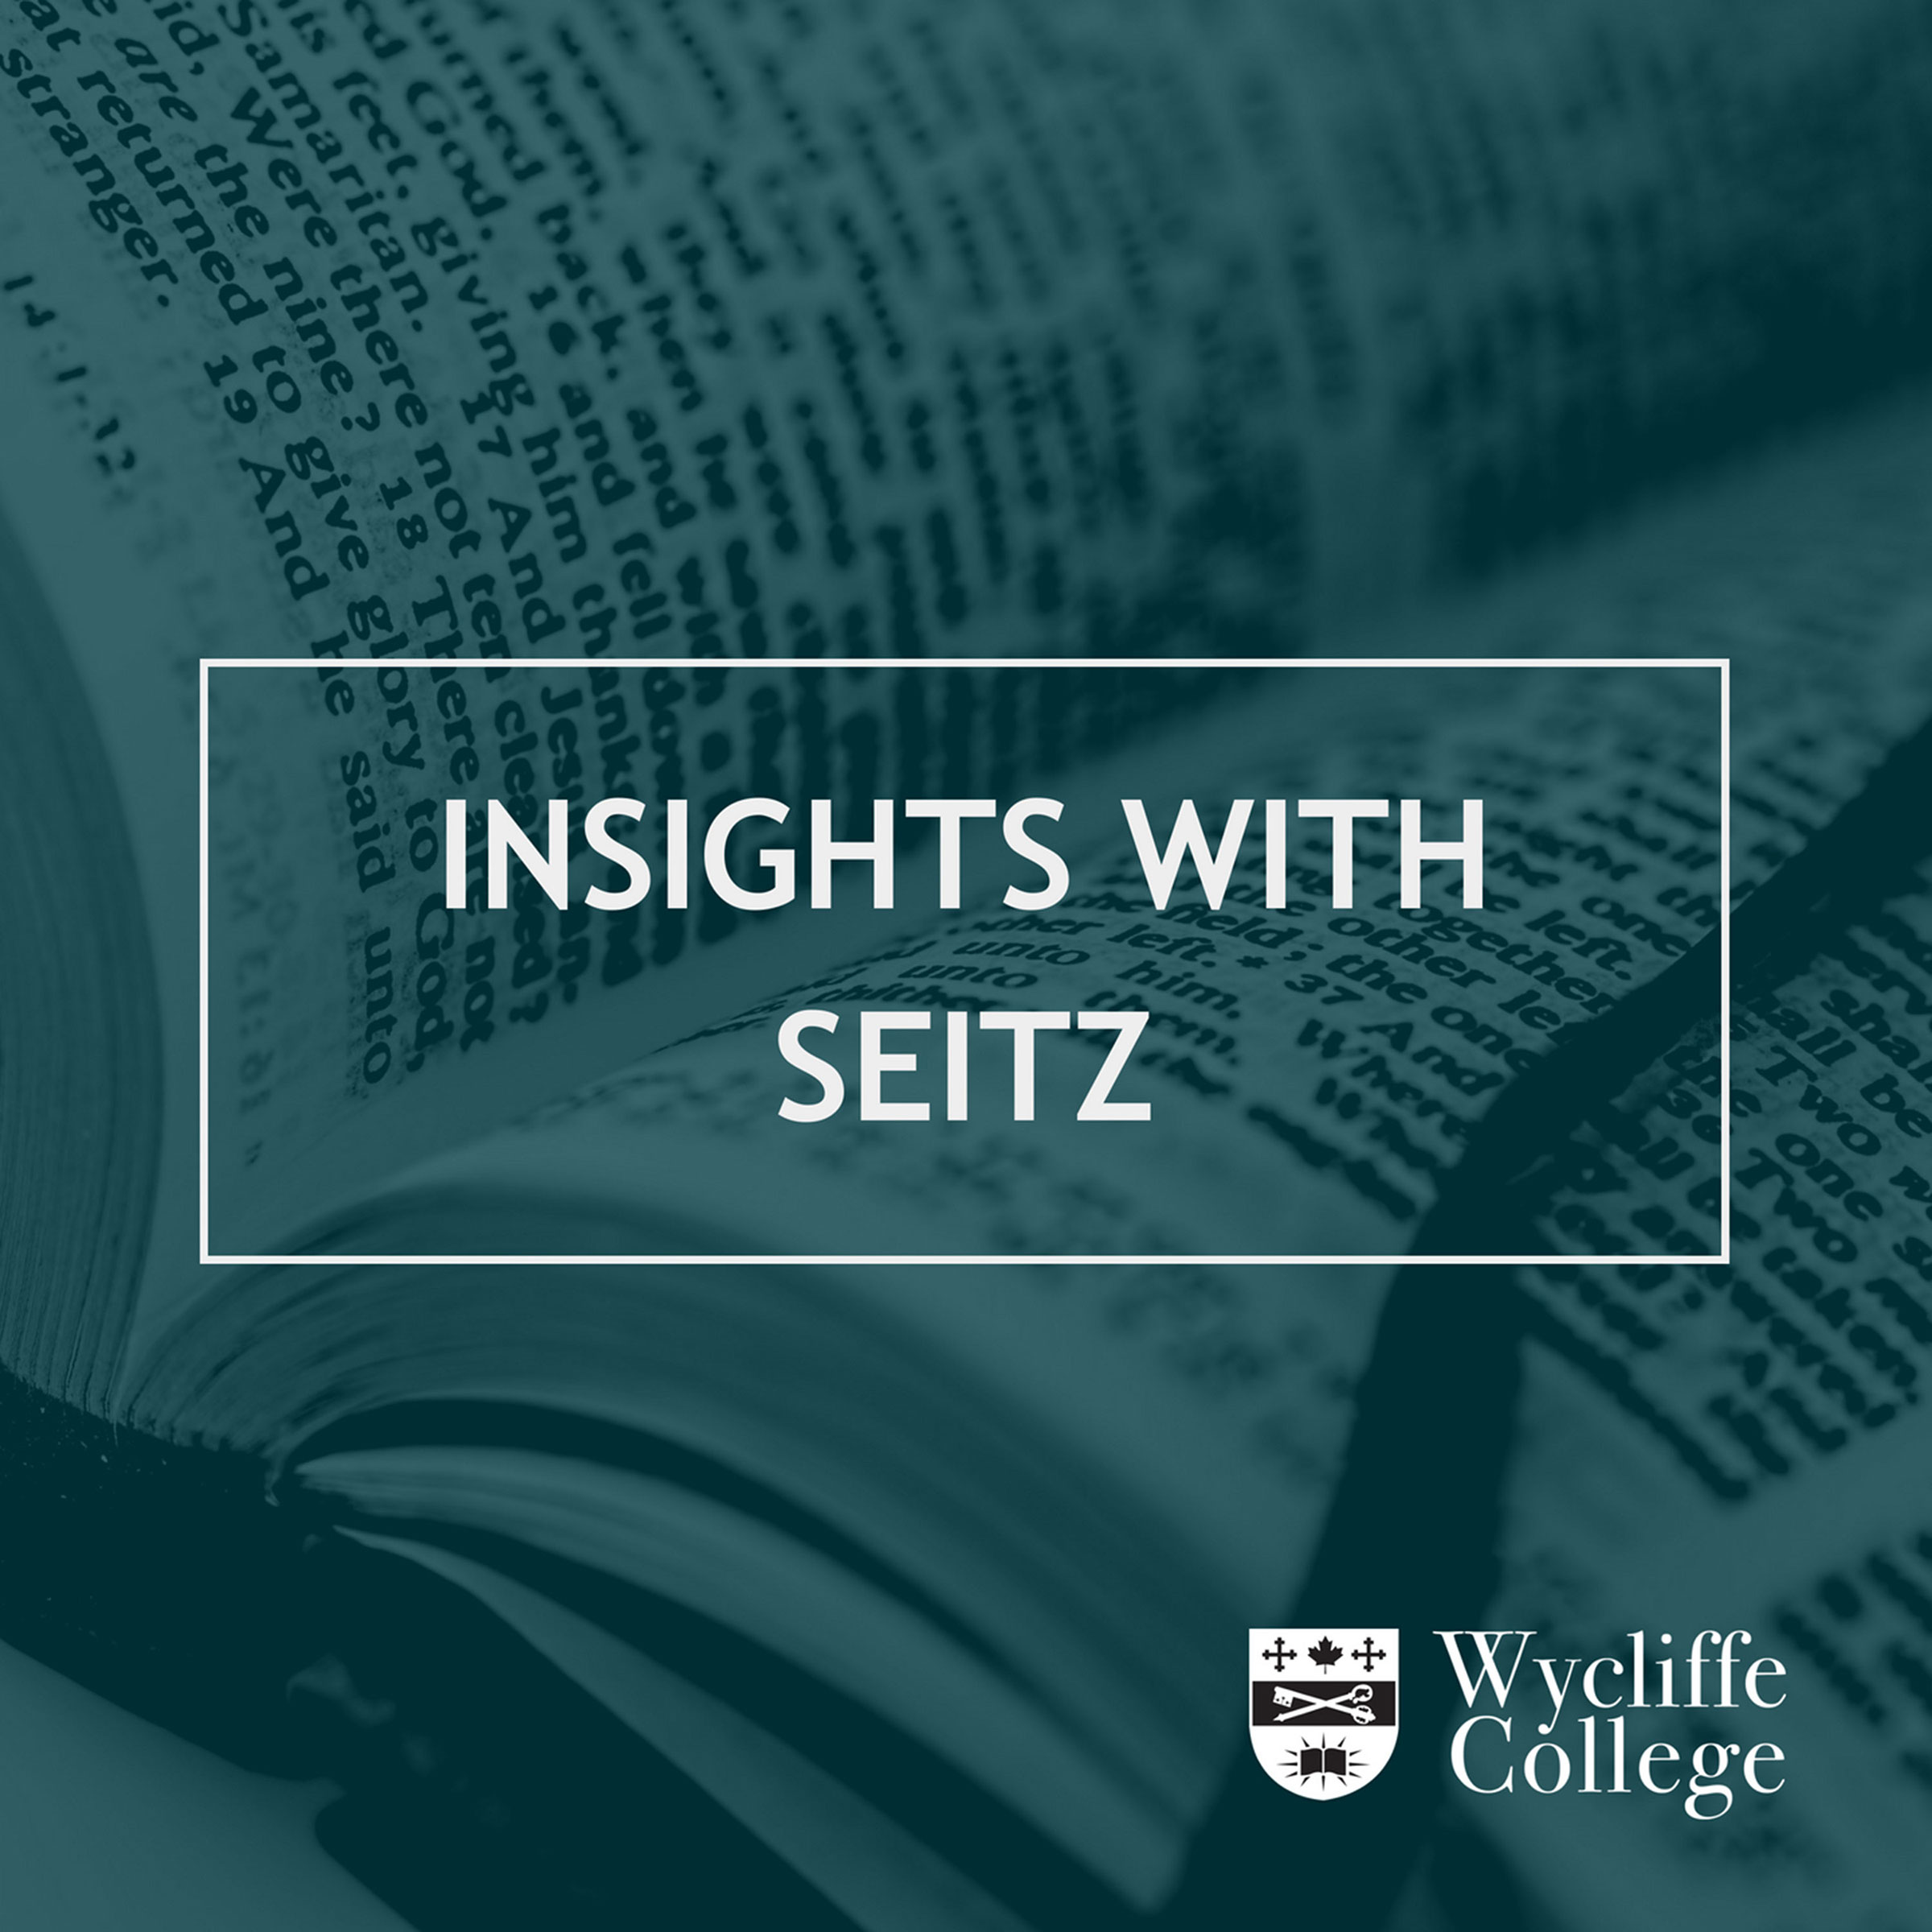 Insights with Seitz